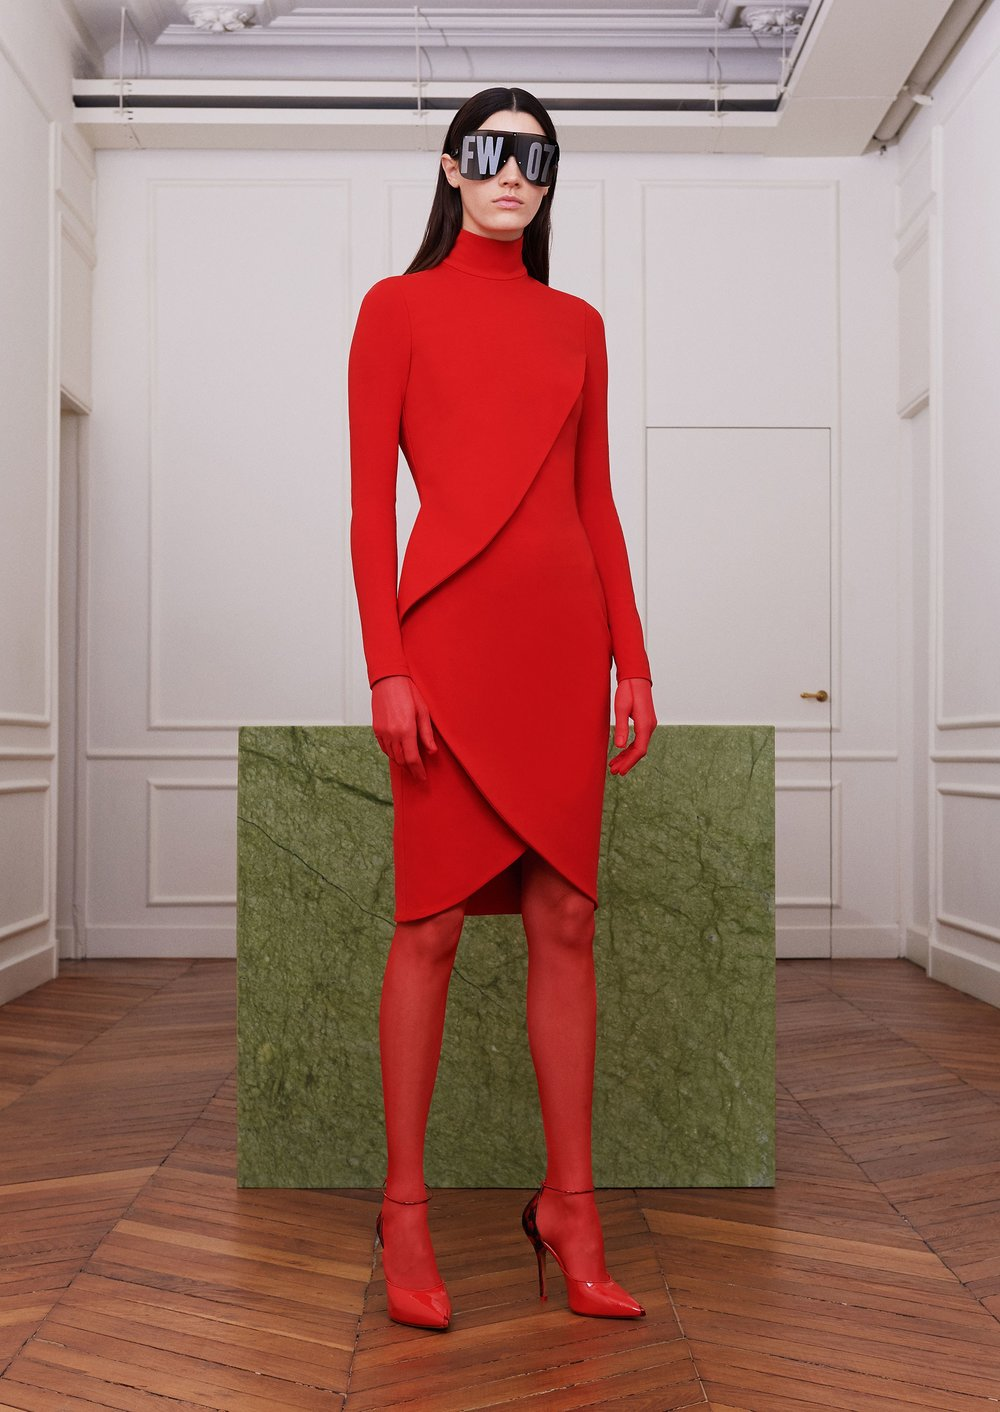 Seasonal red-givenchy-fall-2017.jpg